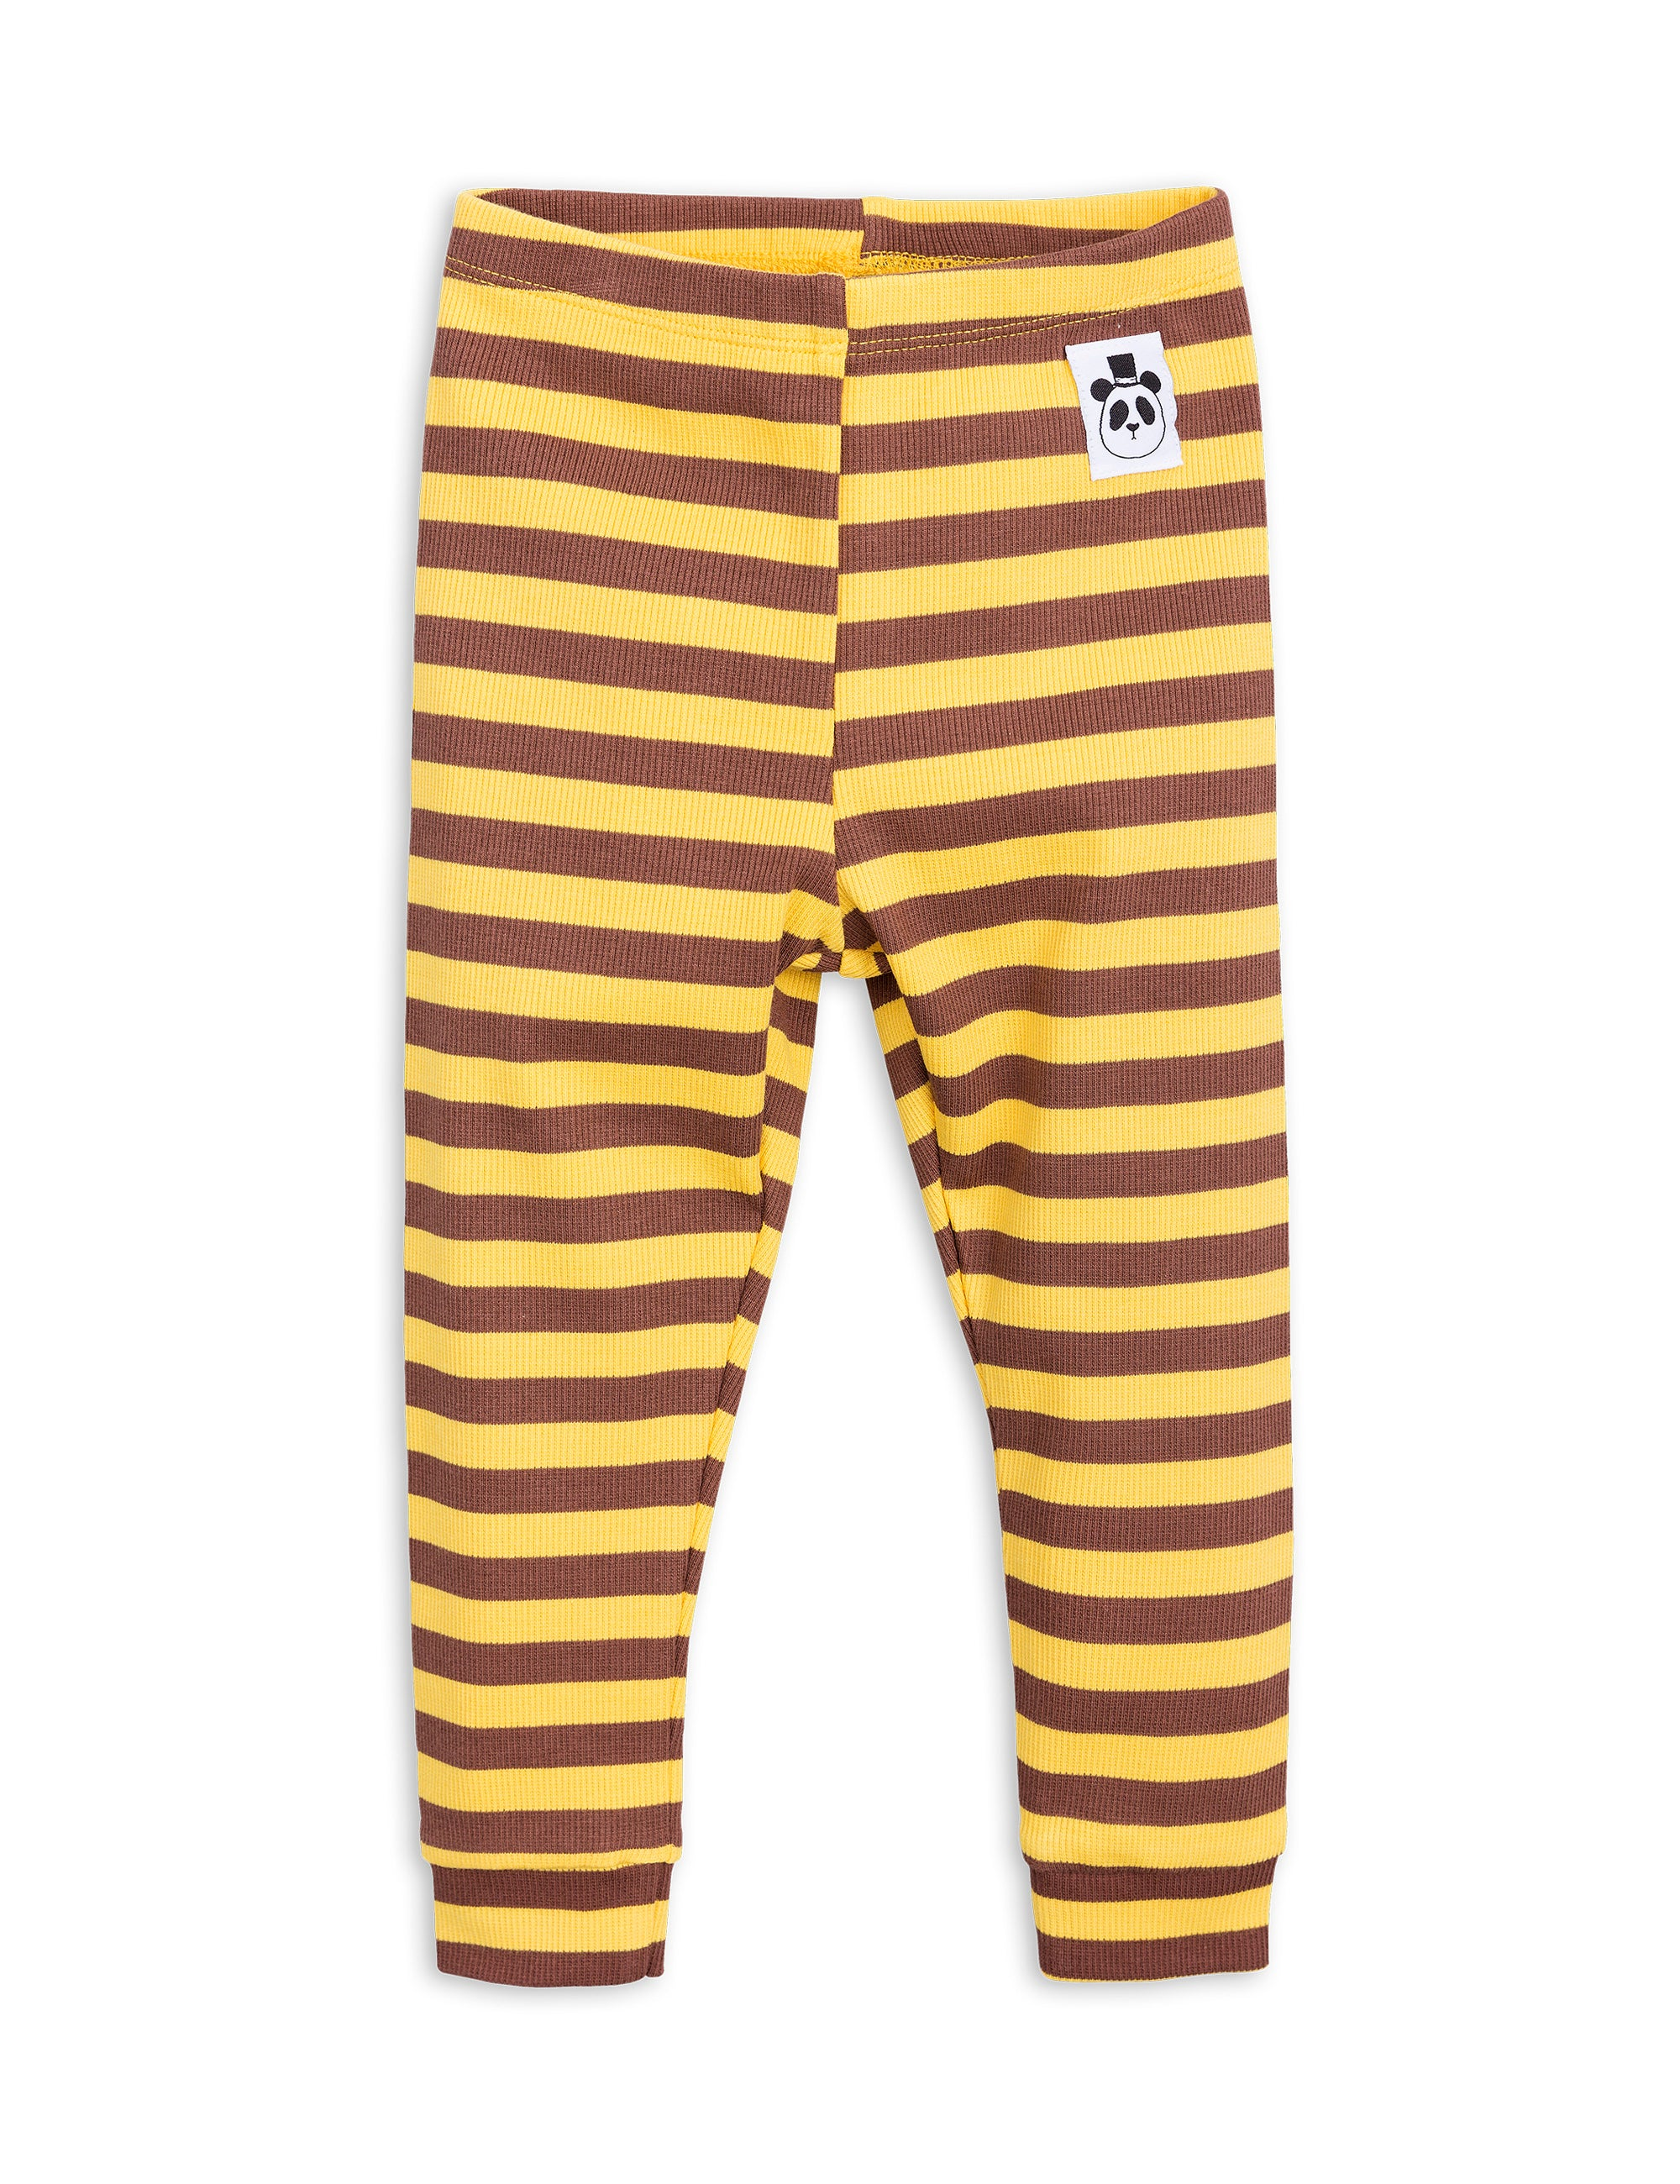 MINI RODINI - Stripe Rib Leggings / Yellow